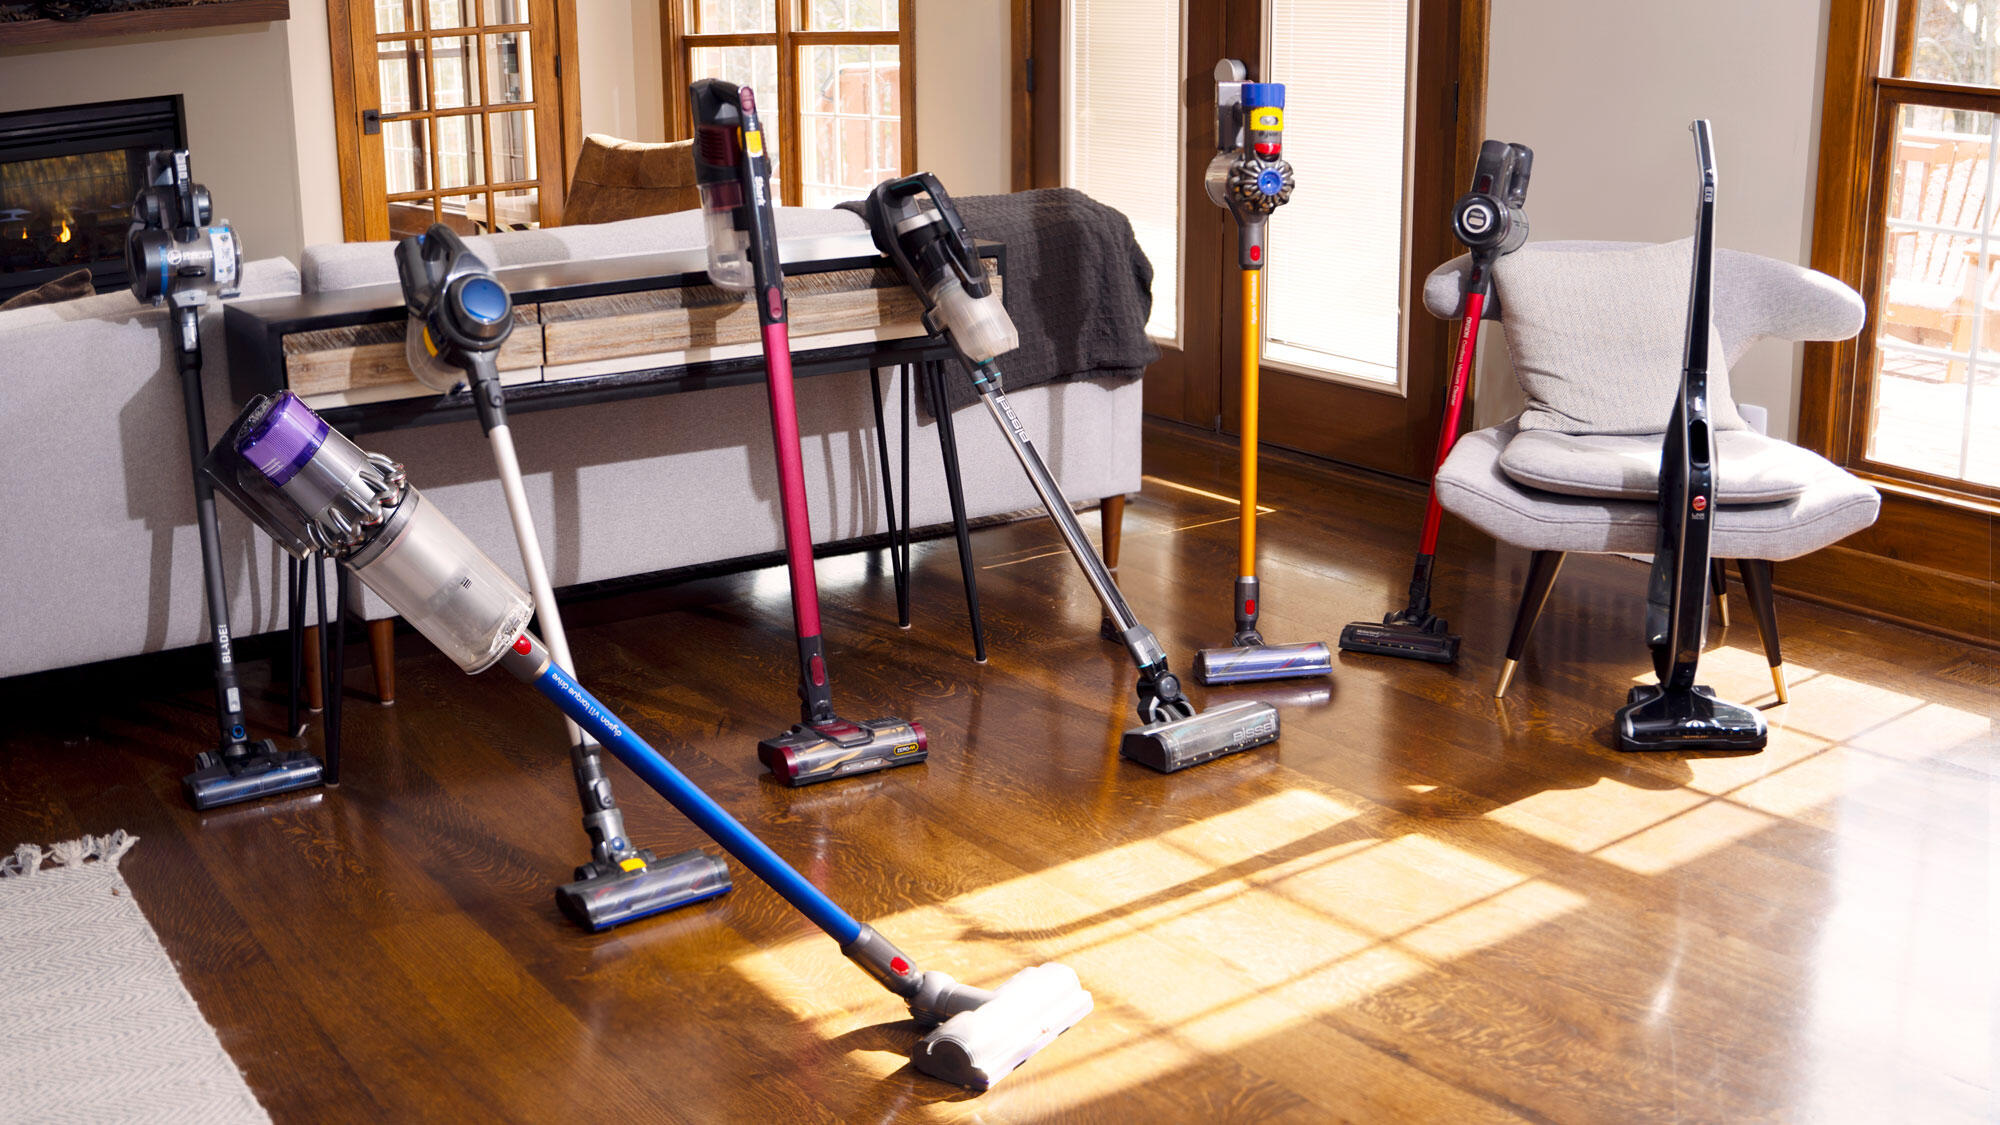 Best cordless vacuum for 2021: Bissell, Hoover, Moosoo, Shark, Dyson and more